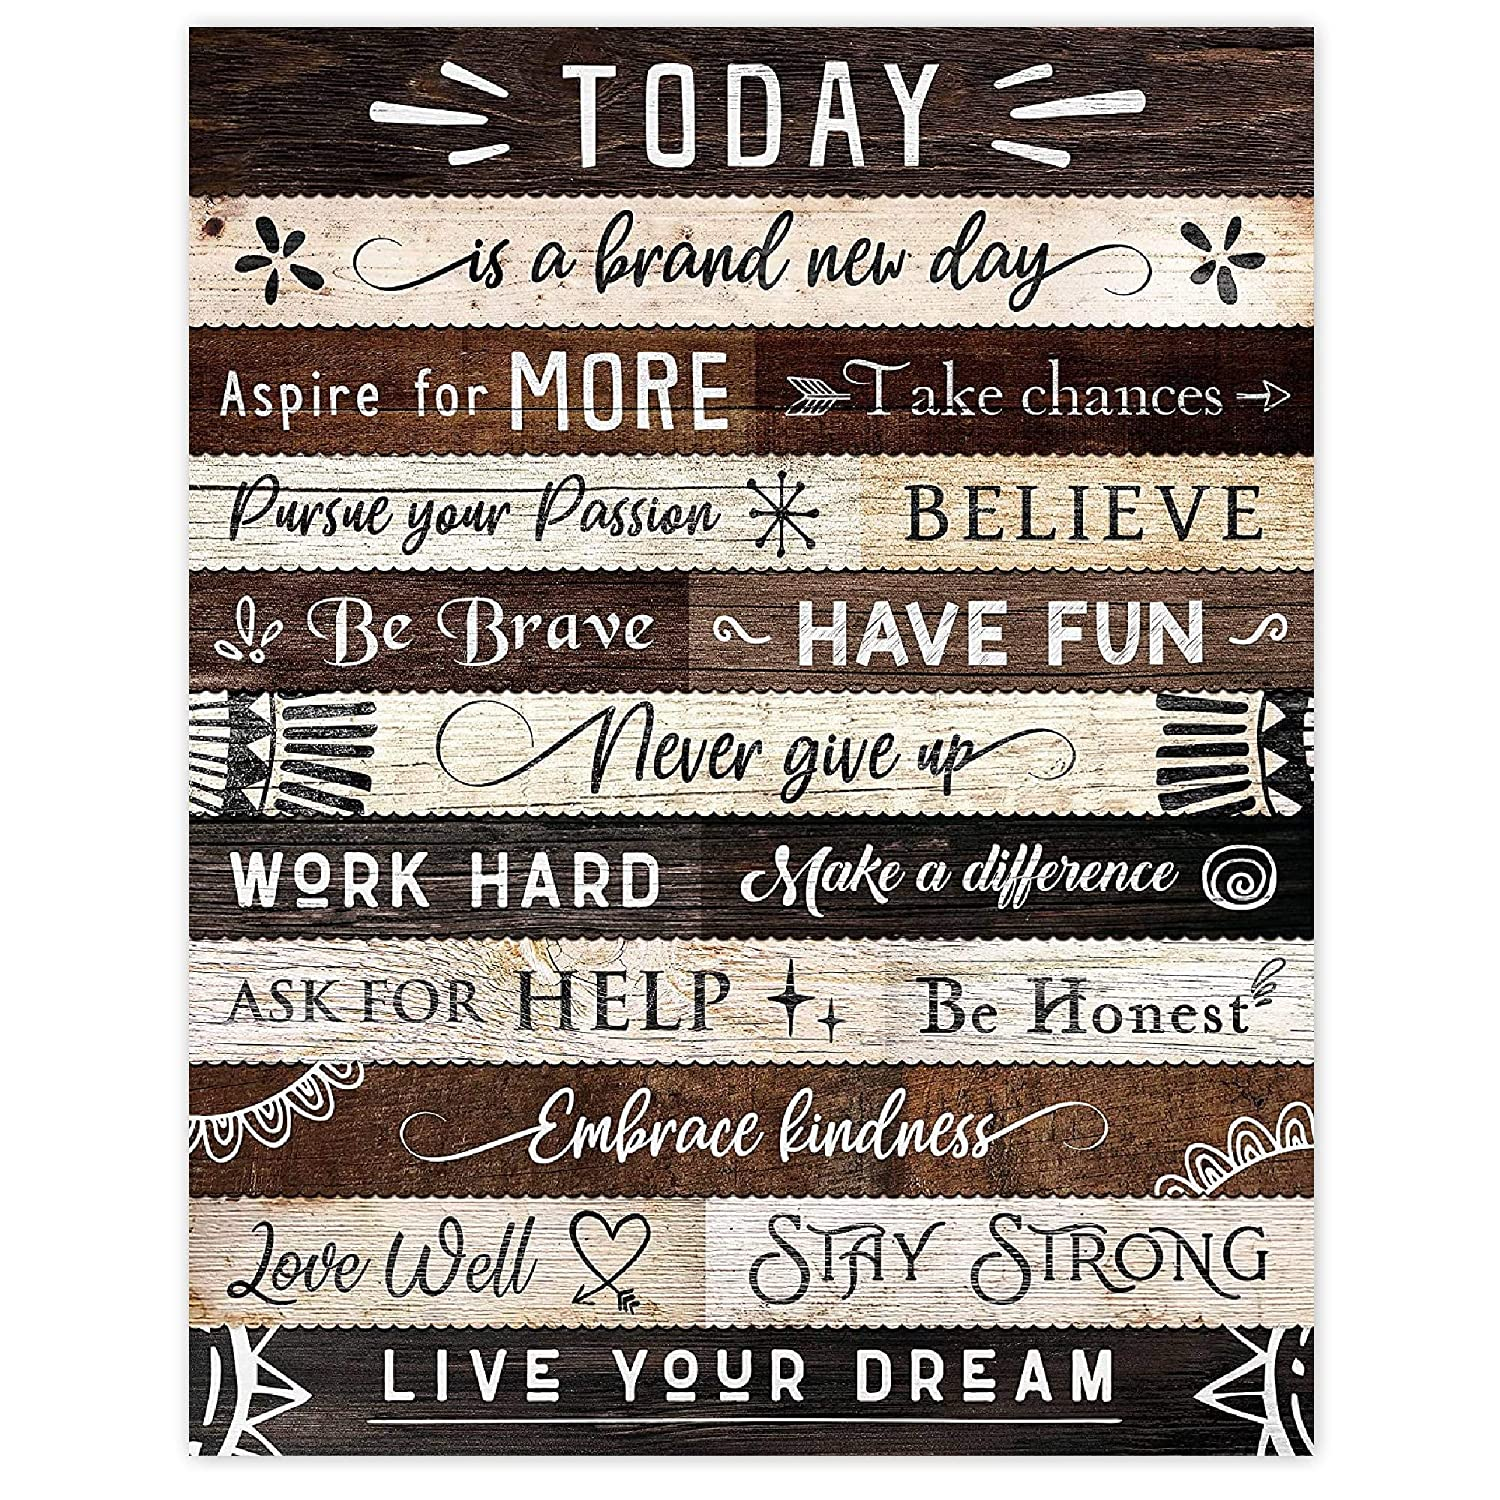 Today Is a Brand Bargain sale New Day Inspirational Set Poster Quotes Translated Prints